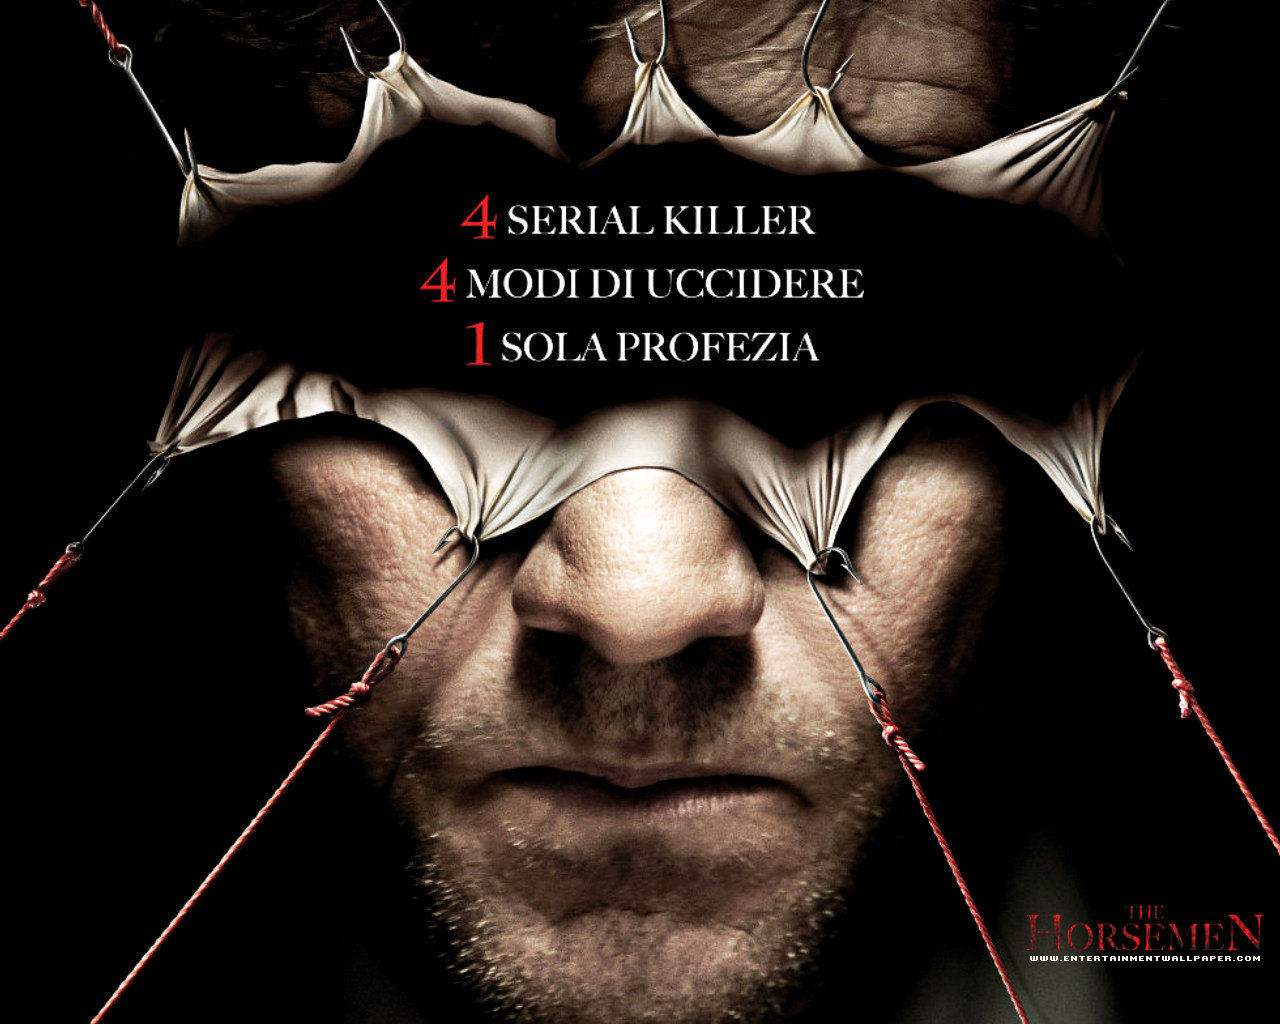 Serial Killers Wallpaper 4 Strange Serial Killers iPhone Wallpaper 4 1280x1024